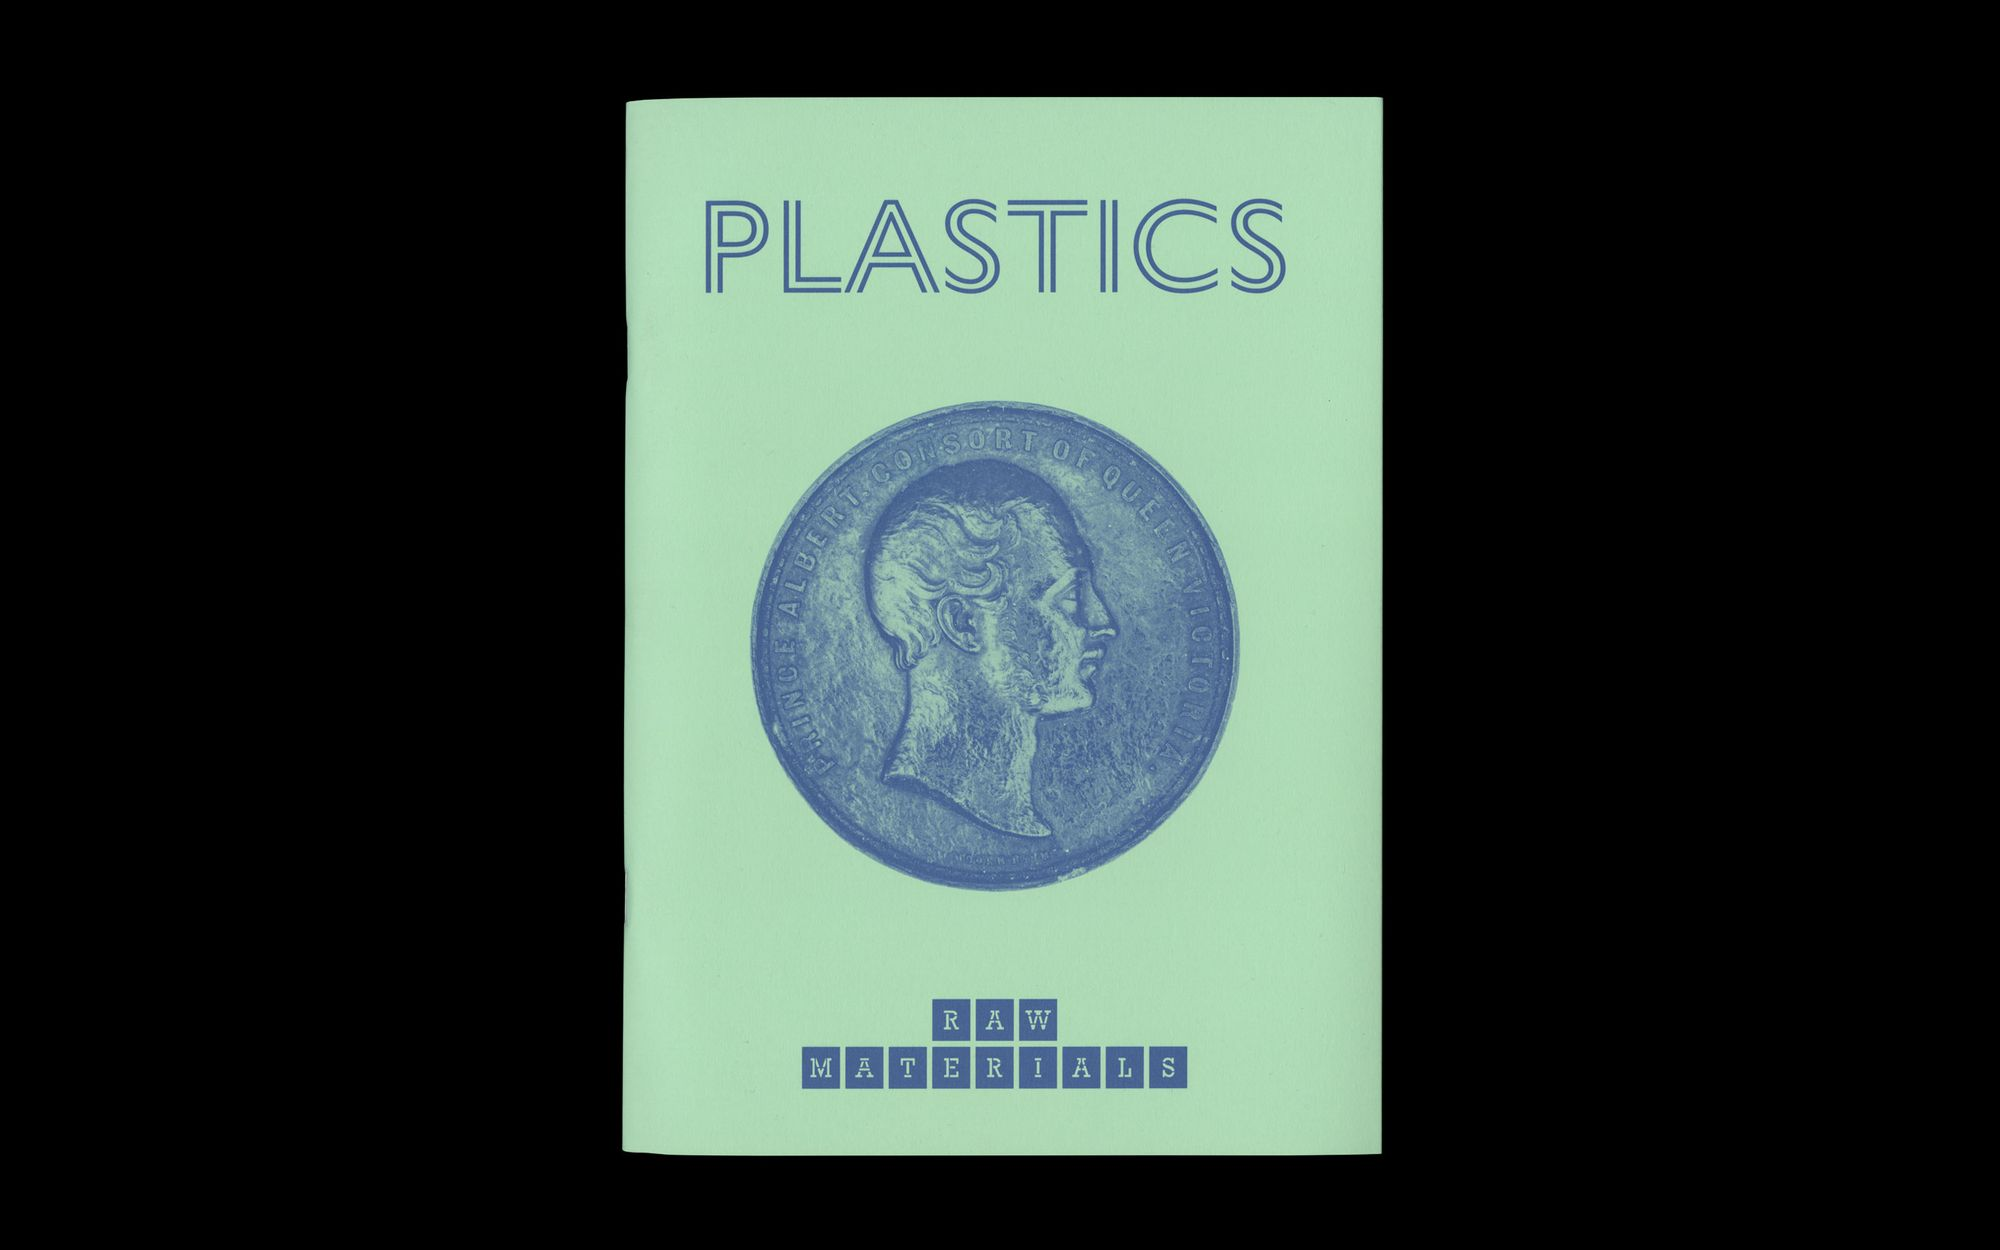 Scanned cover of Plastics publication